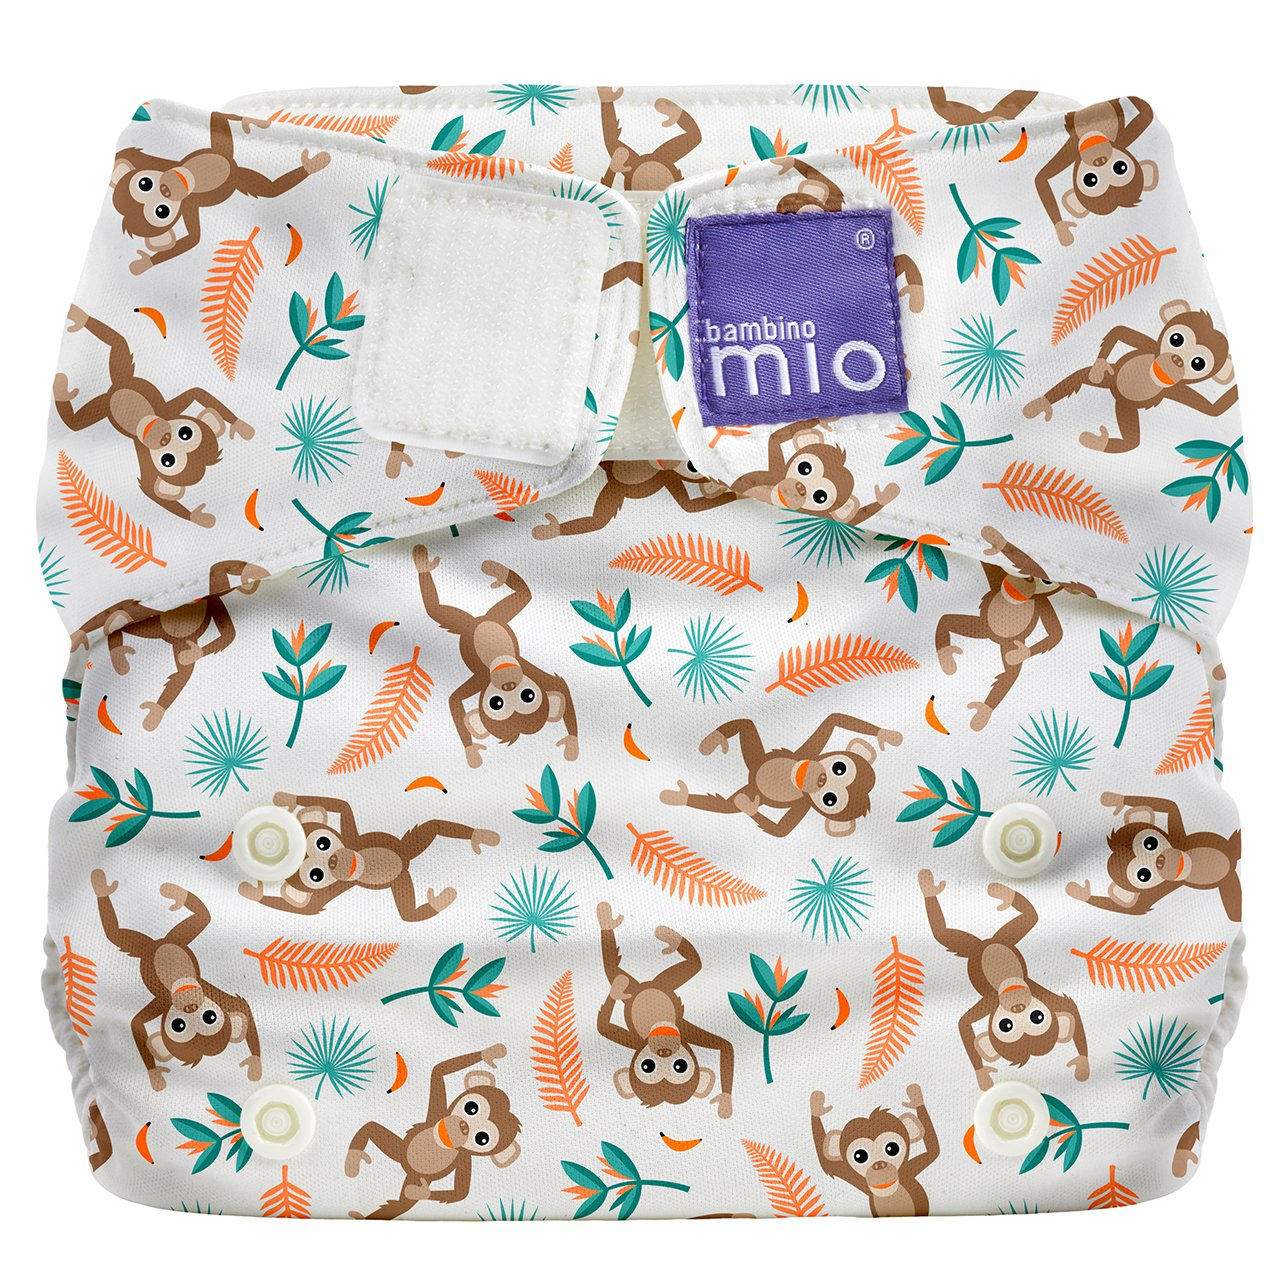 Bambino Mio Miosolo All-in-One Cloth Diaper, Spider Monkey